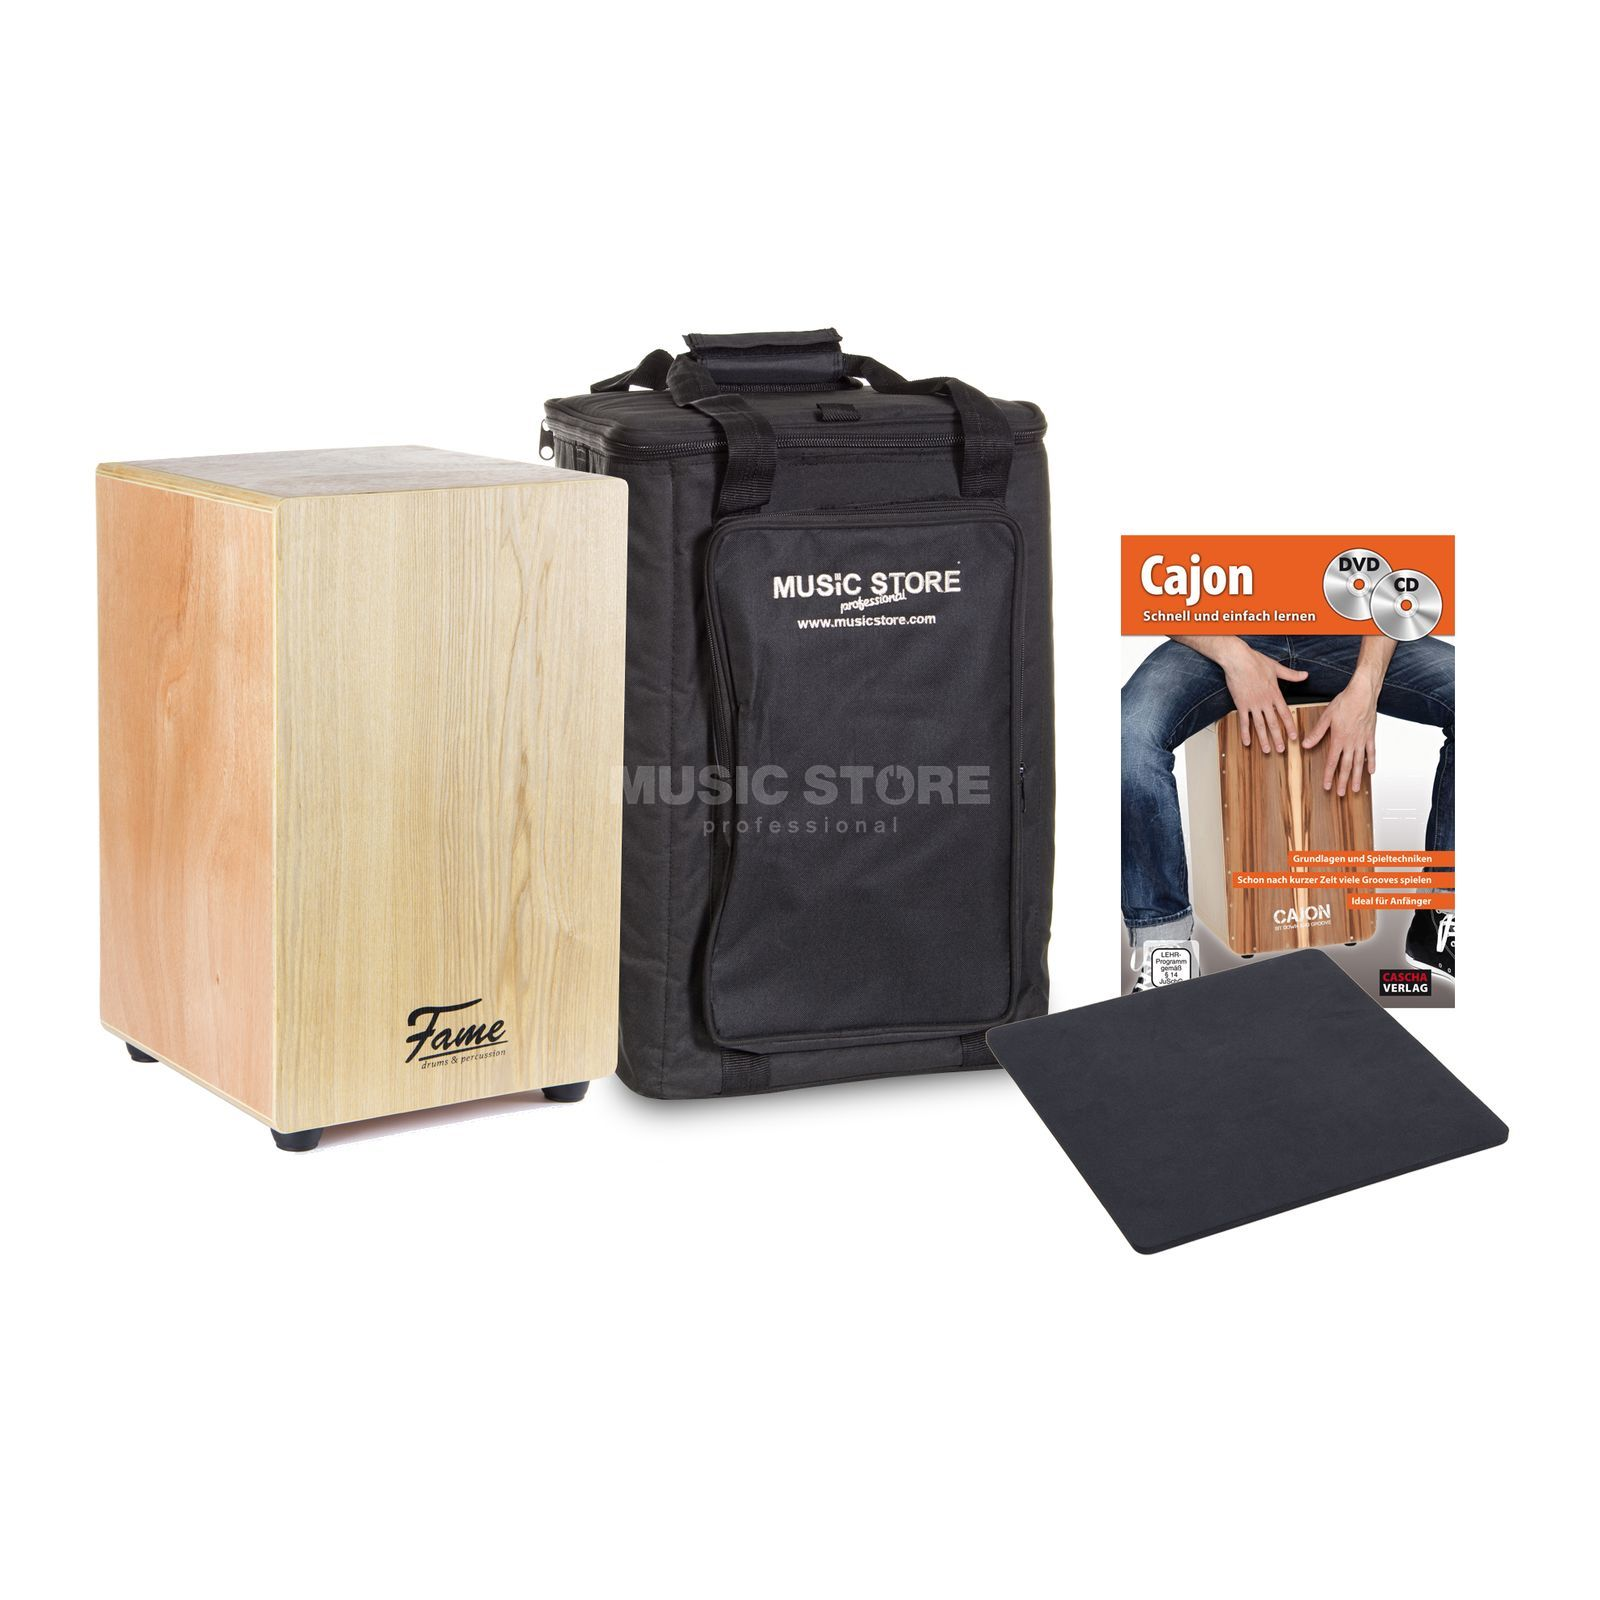 Beginner Cajon+Bag+DVD - Set Produktbillede